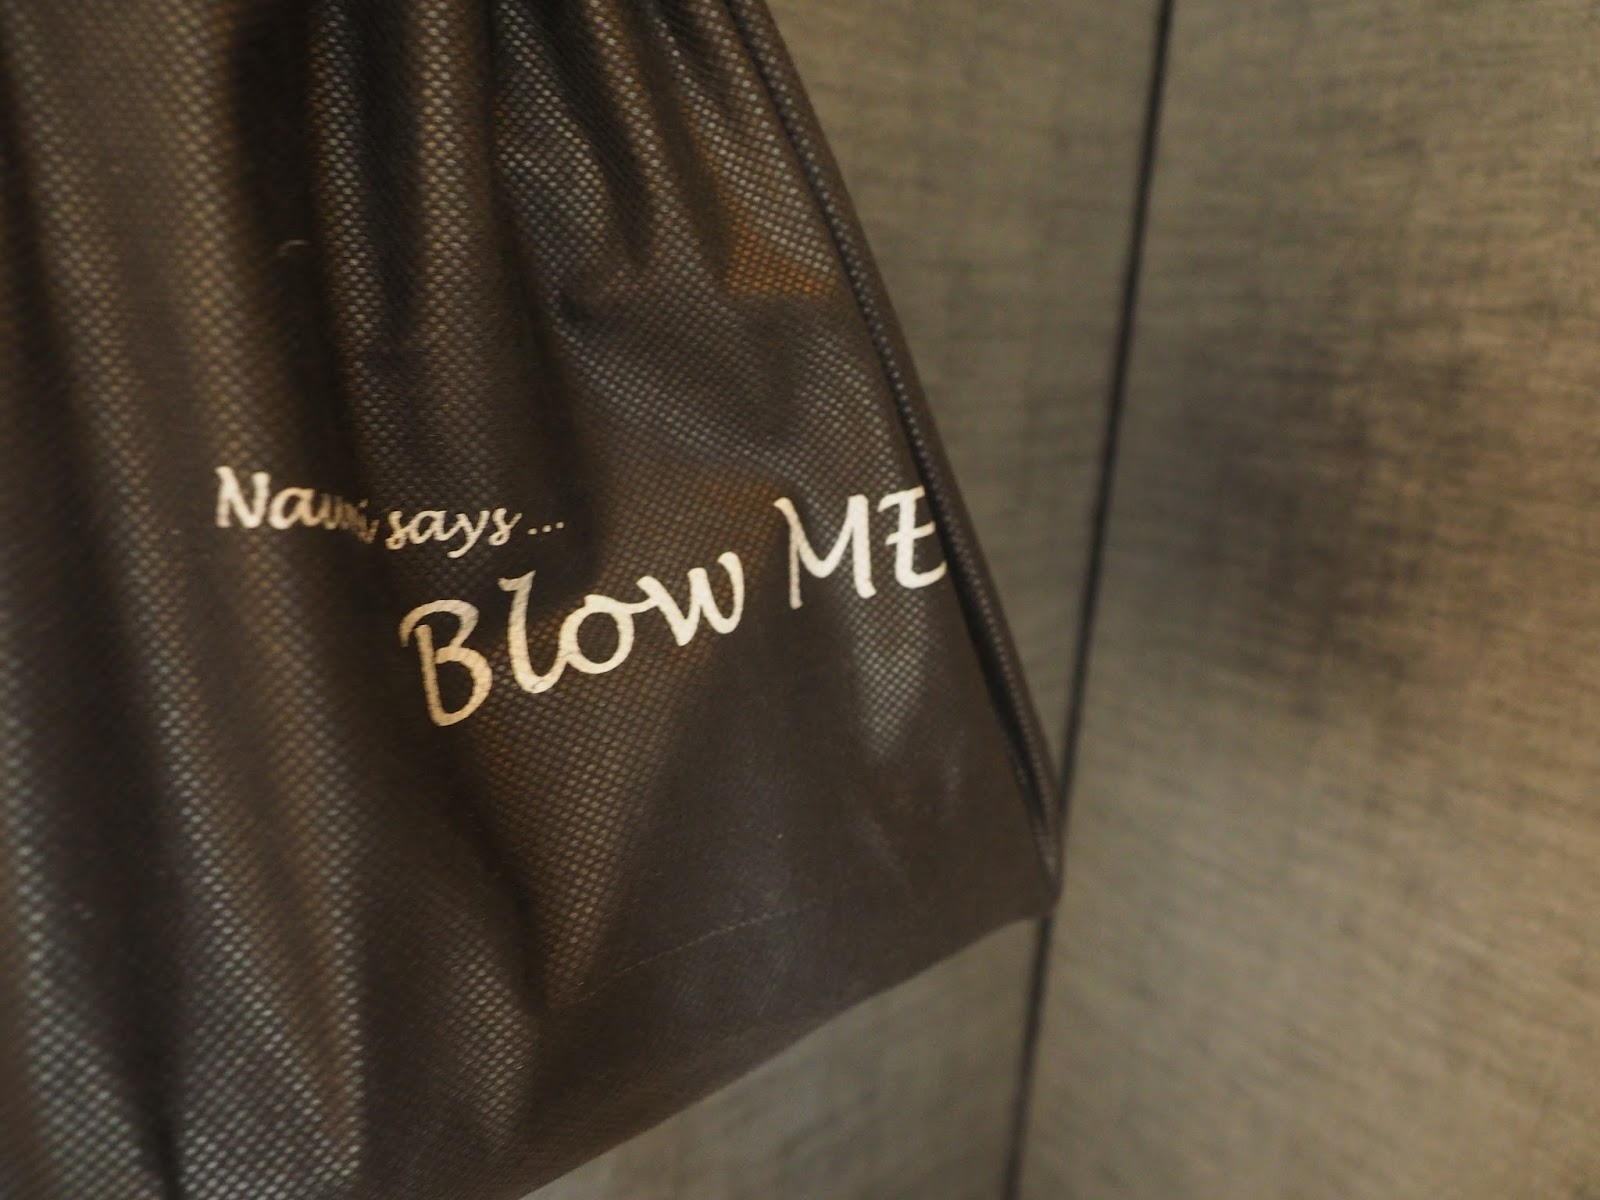 naumi hotel boutique singapore funny amenity kit saying blow me